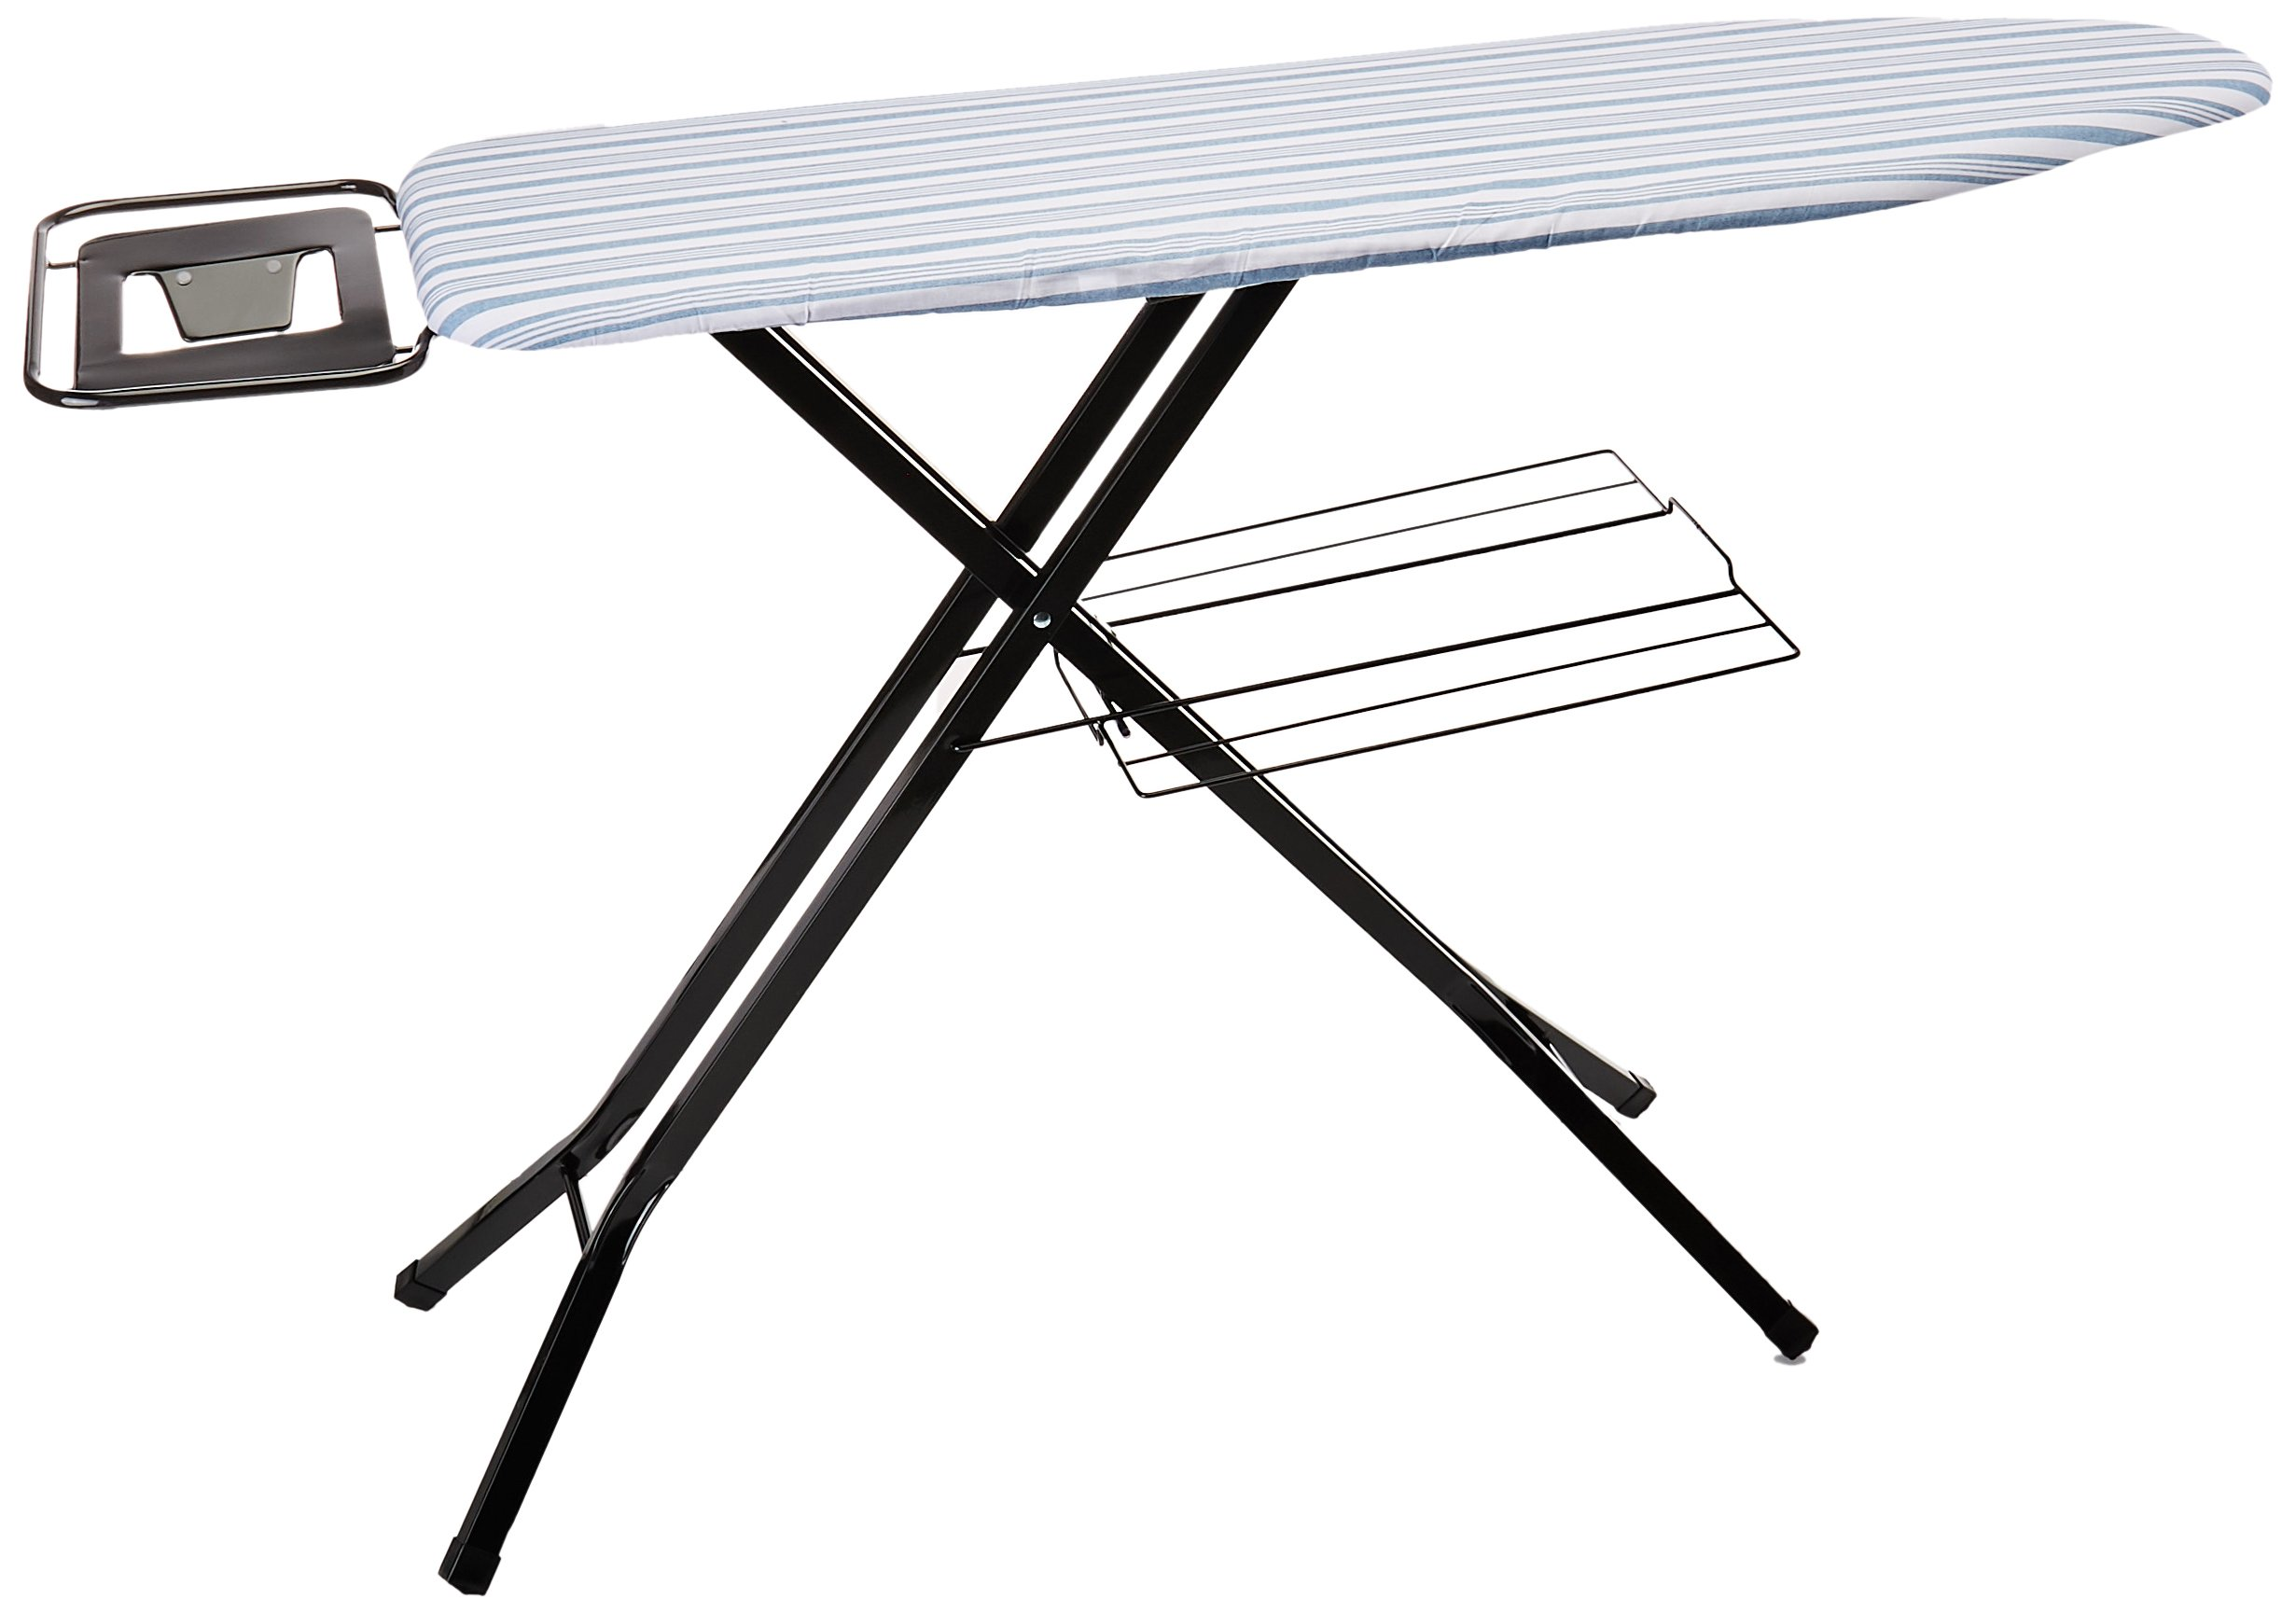 Honey-Can-Do Adjustable Deluxe Ironing Board with Iron Rest by Honey-Can-Do